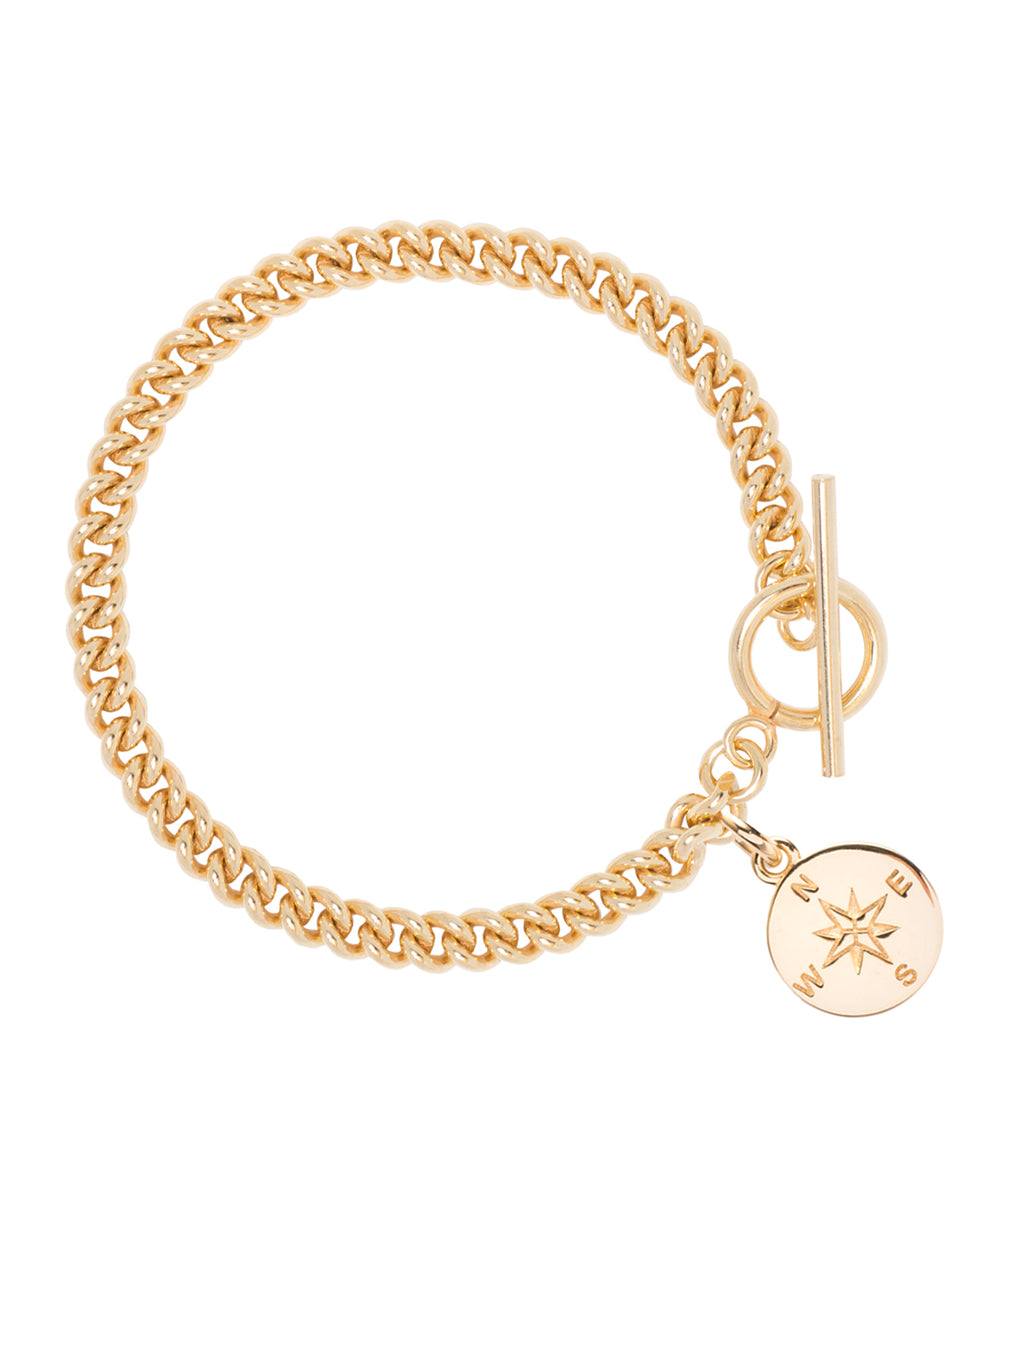 TILLY SVEAAS CURB LINK BRACELET WITH COMPASS